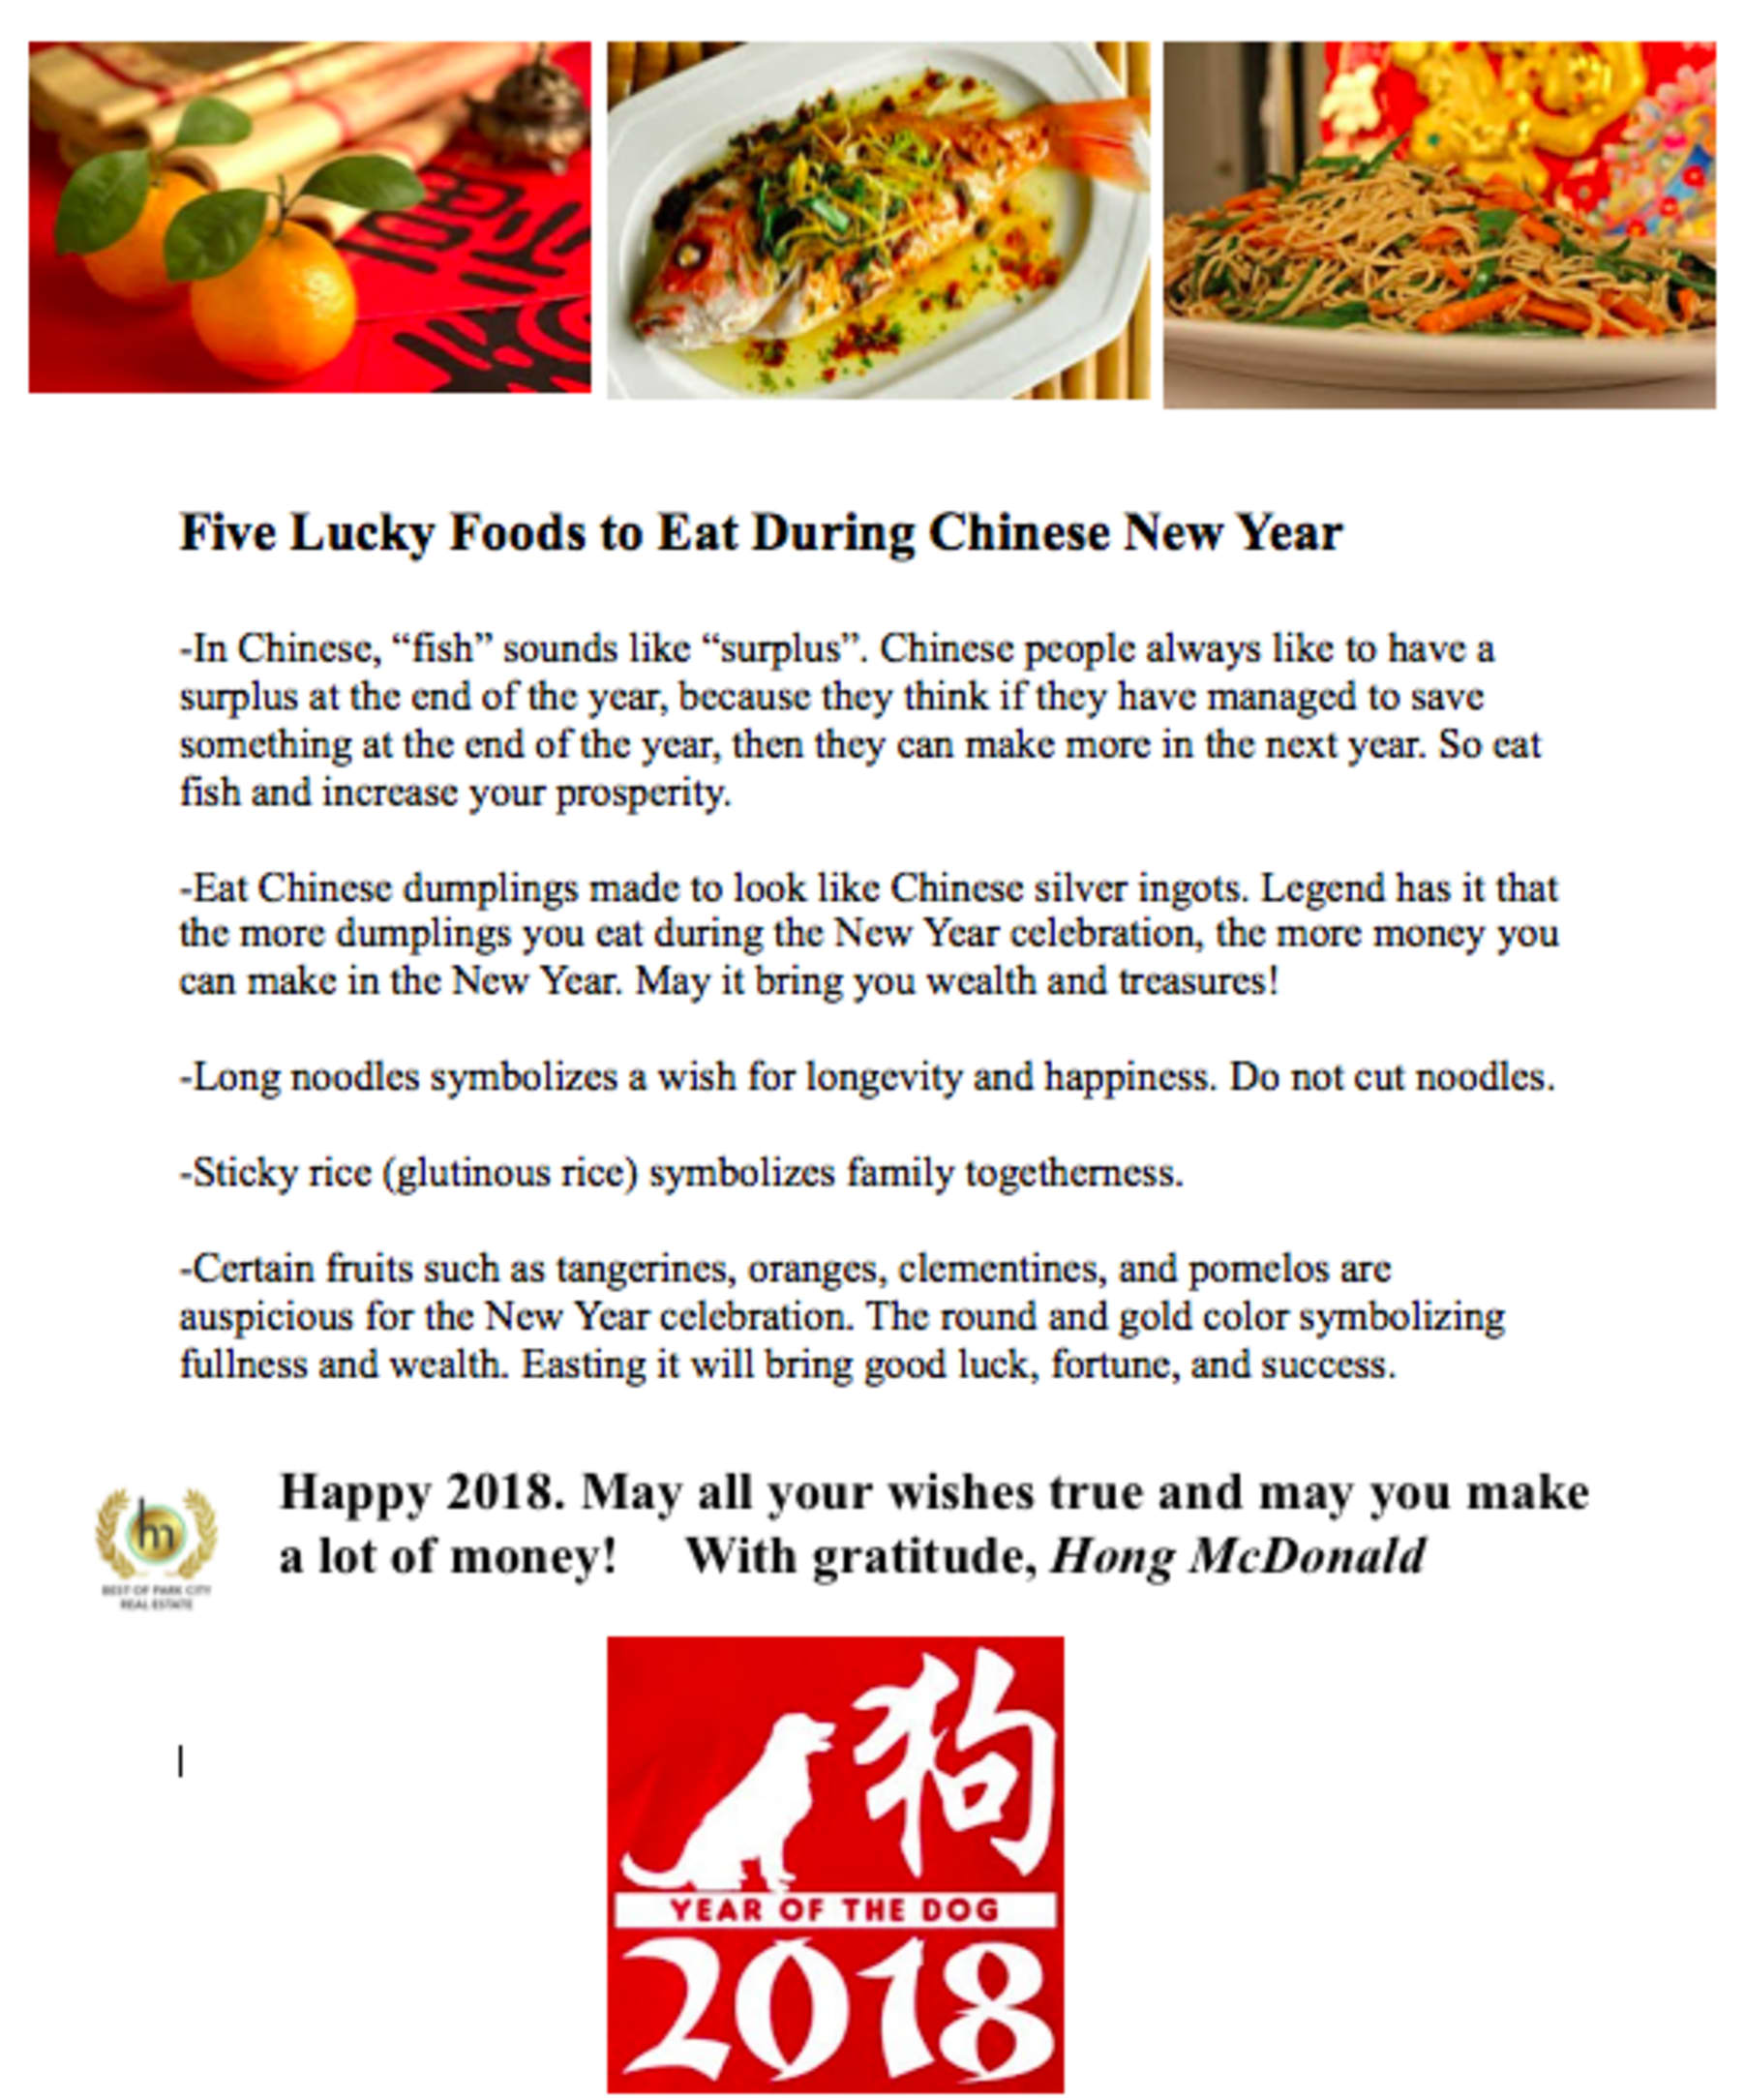 2018 Year of the Dog Chinese New Year Predictions from Hong McDonald ...